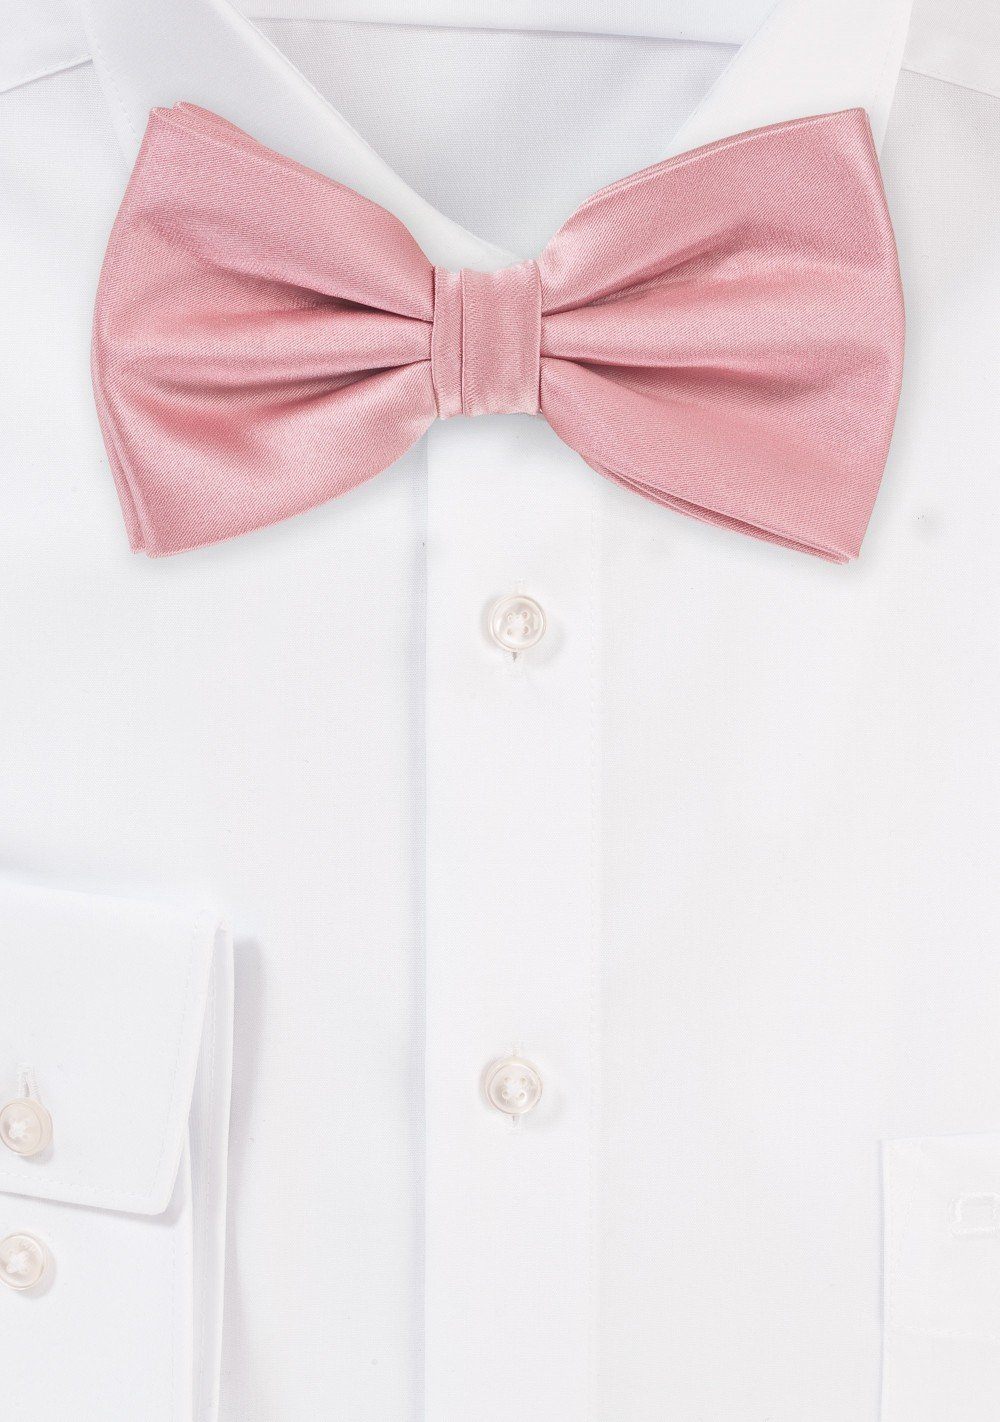 Pre-Tied Bow Tie in Soft Pink